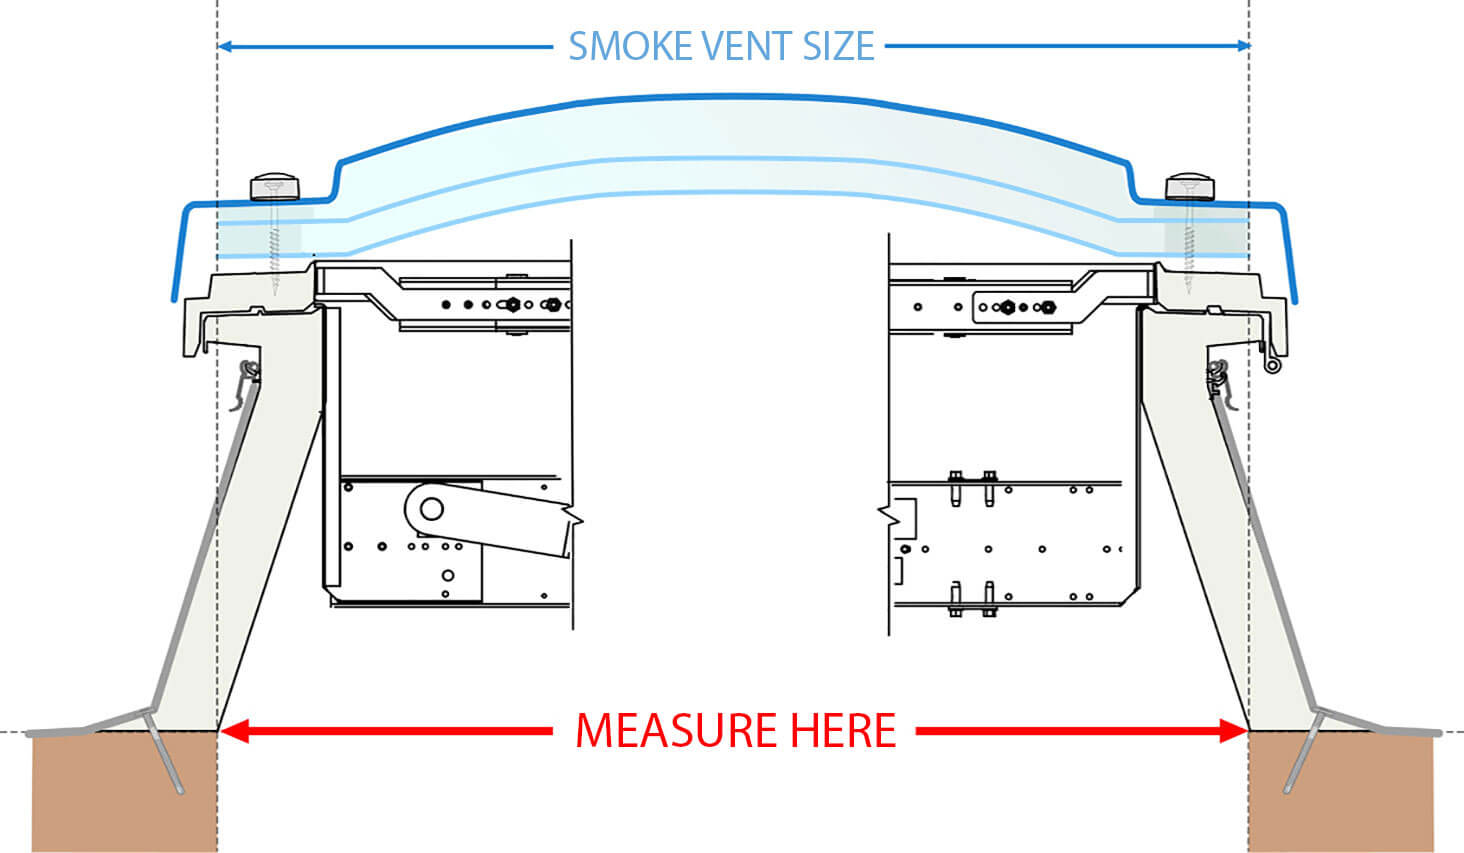 Smoke-Vent Kerb drawing